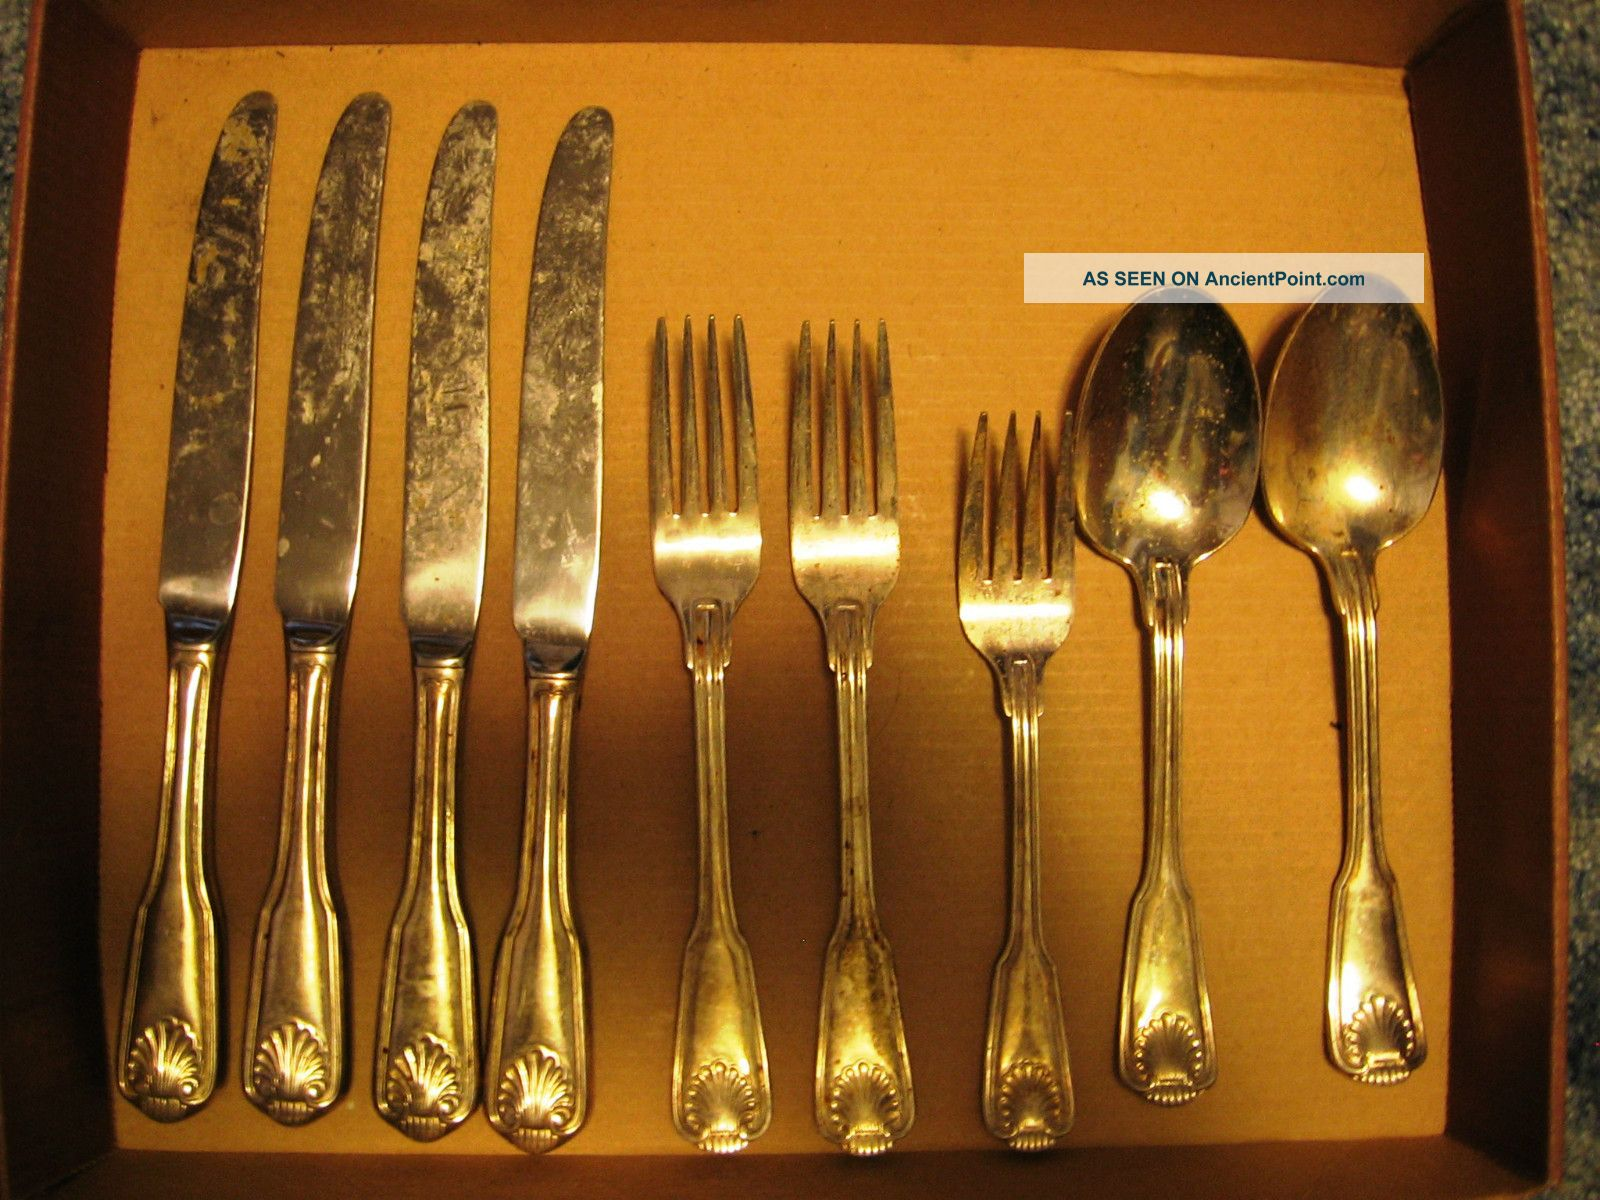 Olde Chelsea Korea Silverplate Flatware Spoons,  Knives,  Forks Other photo